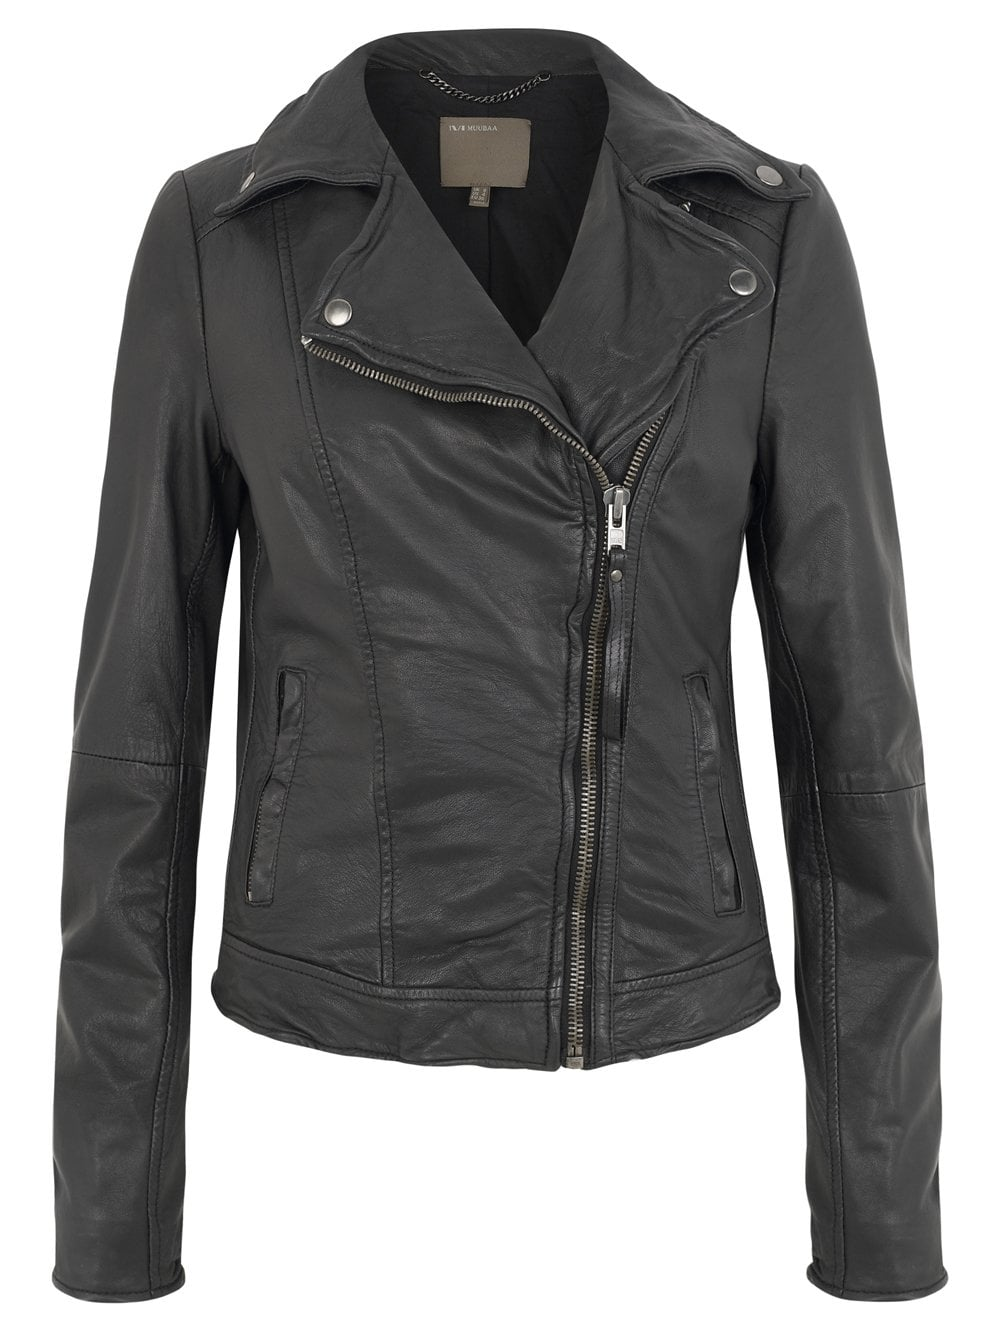 Muubaa Jackets | Designer Leather Jackets | Buy Muubaa Jackets